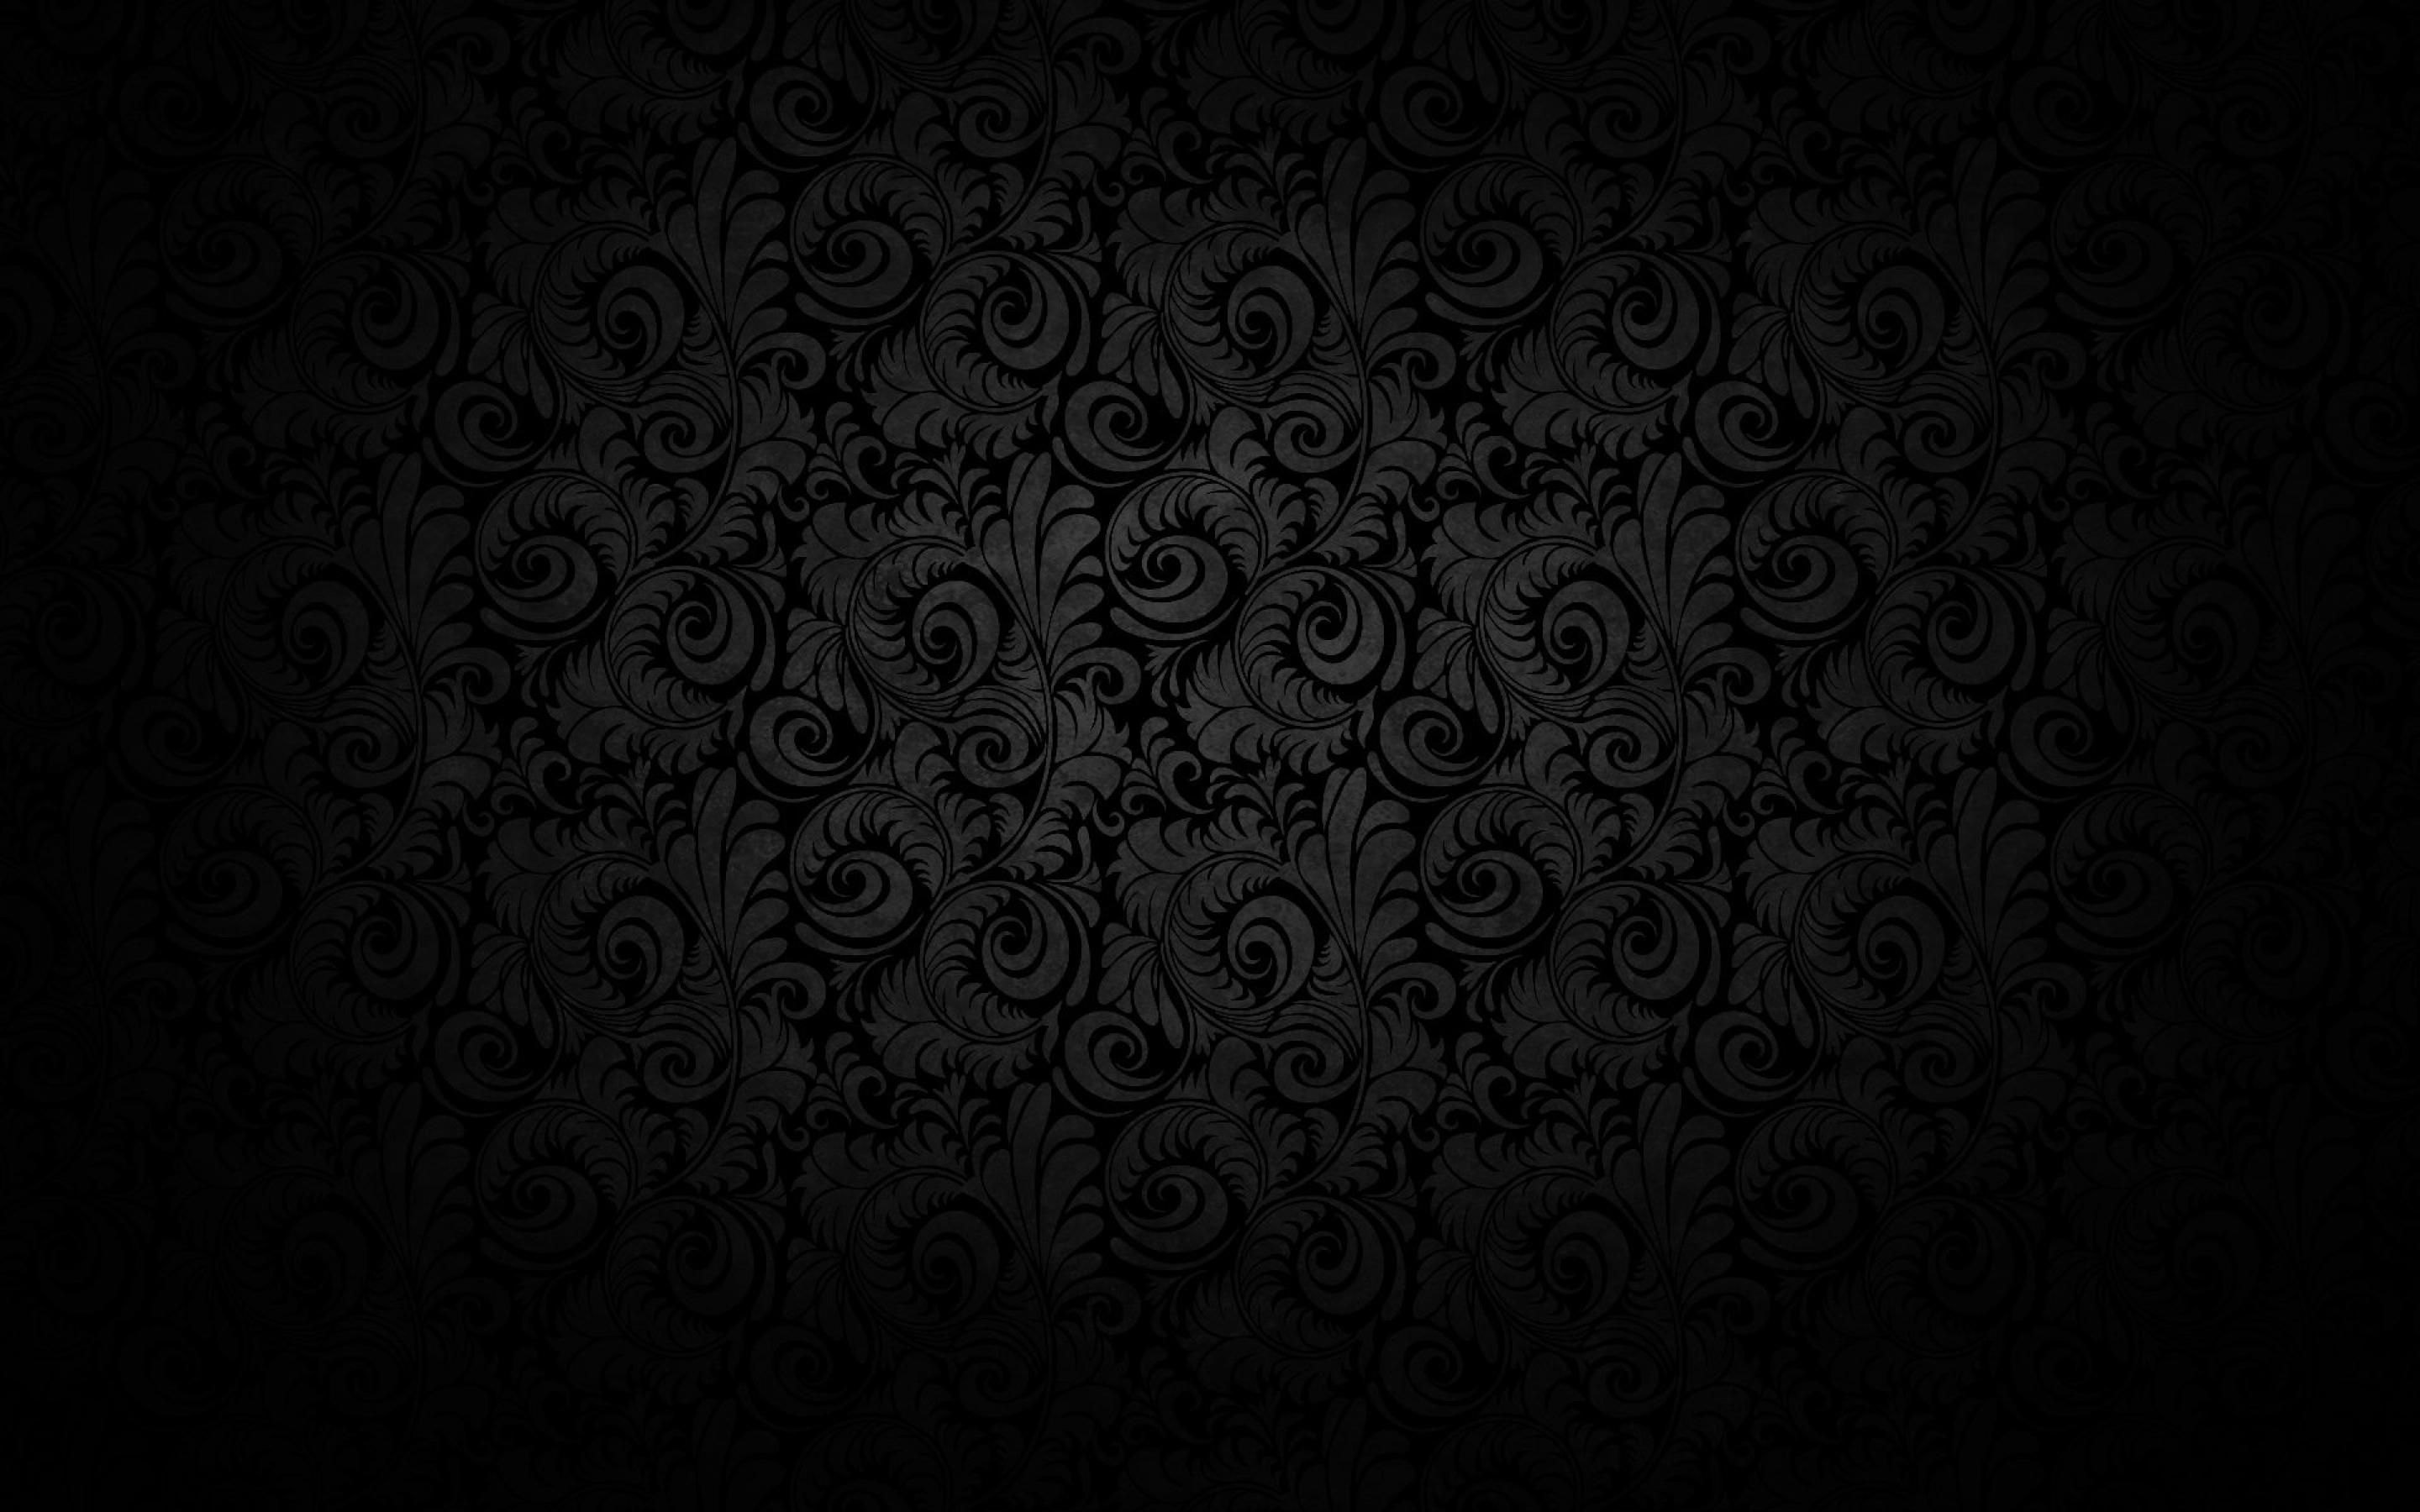 Vintage Navy Blue Wallpaper Background 2880x1800 px 329.03